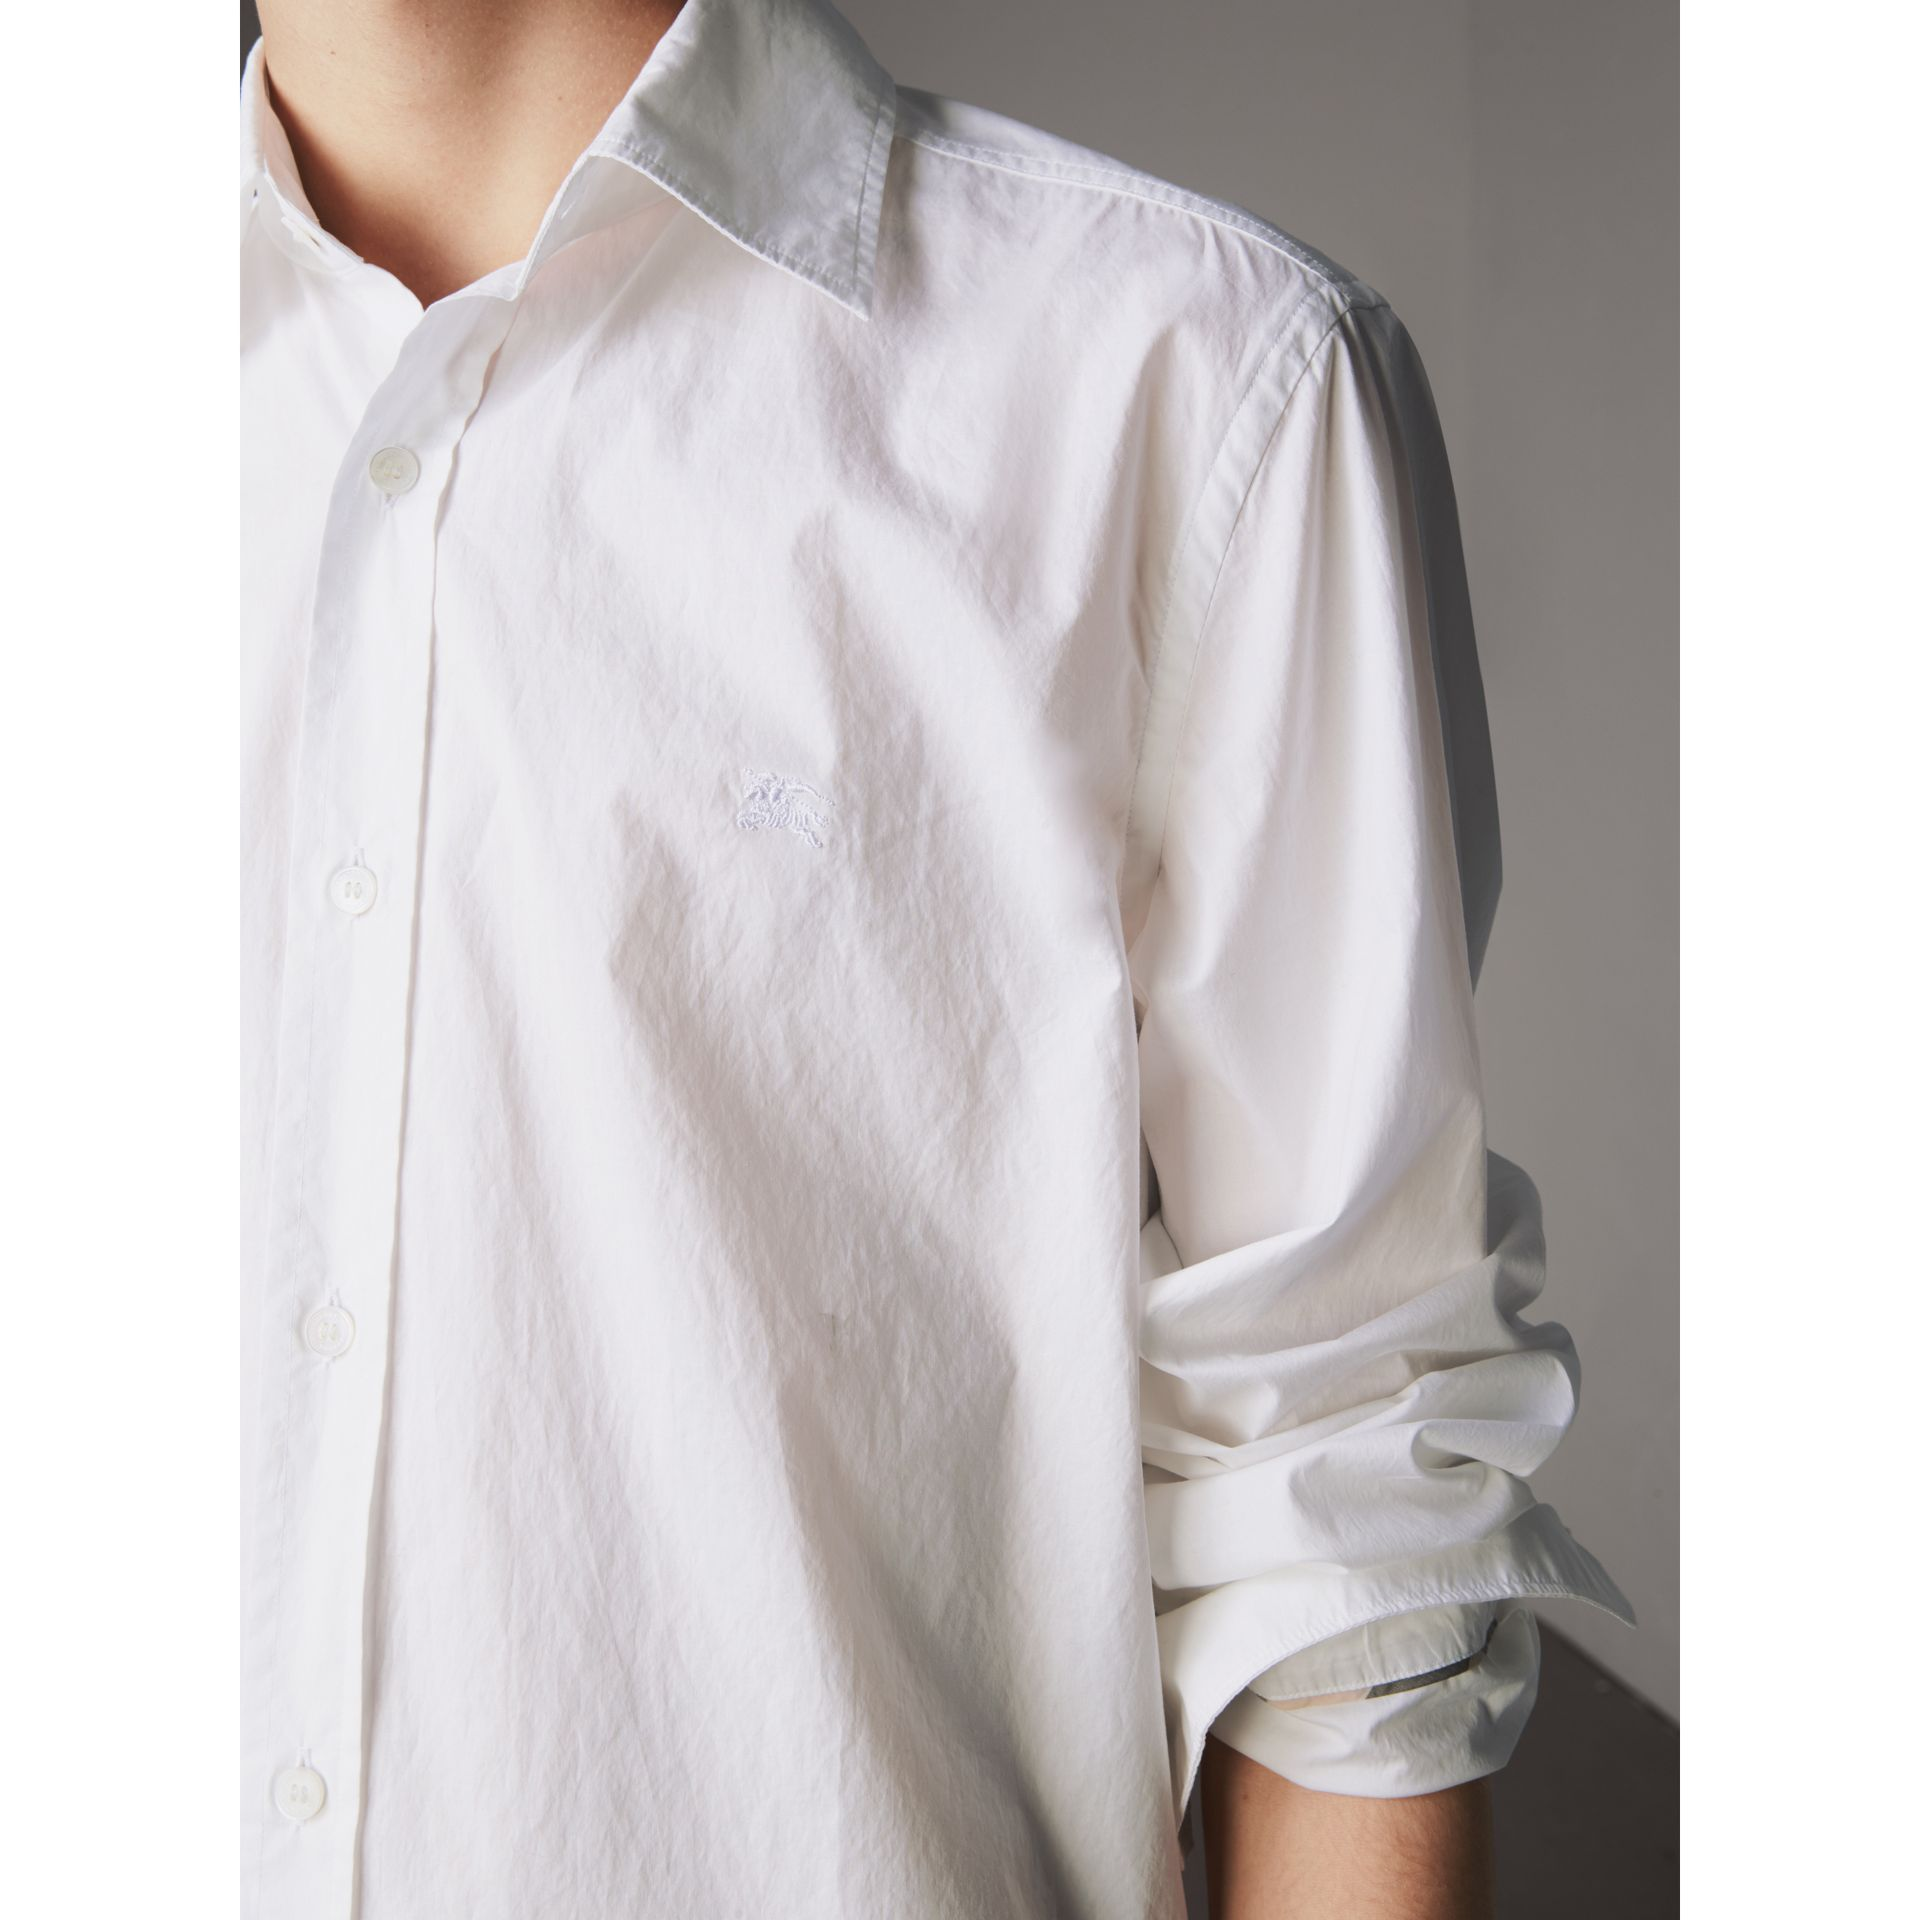 Japanese Cotton Poplin Shirt in White - Men | Burberry - gallery image 1